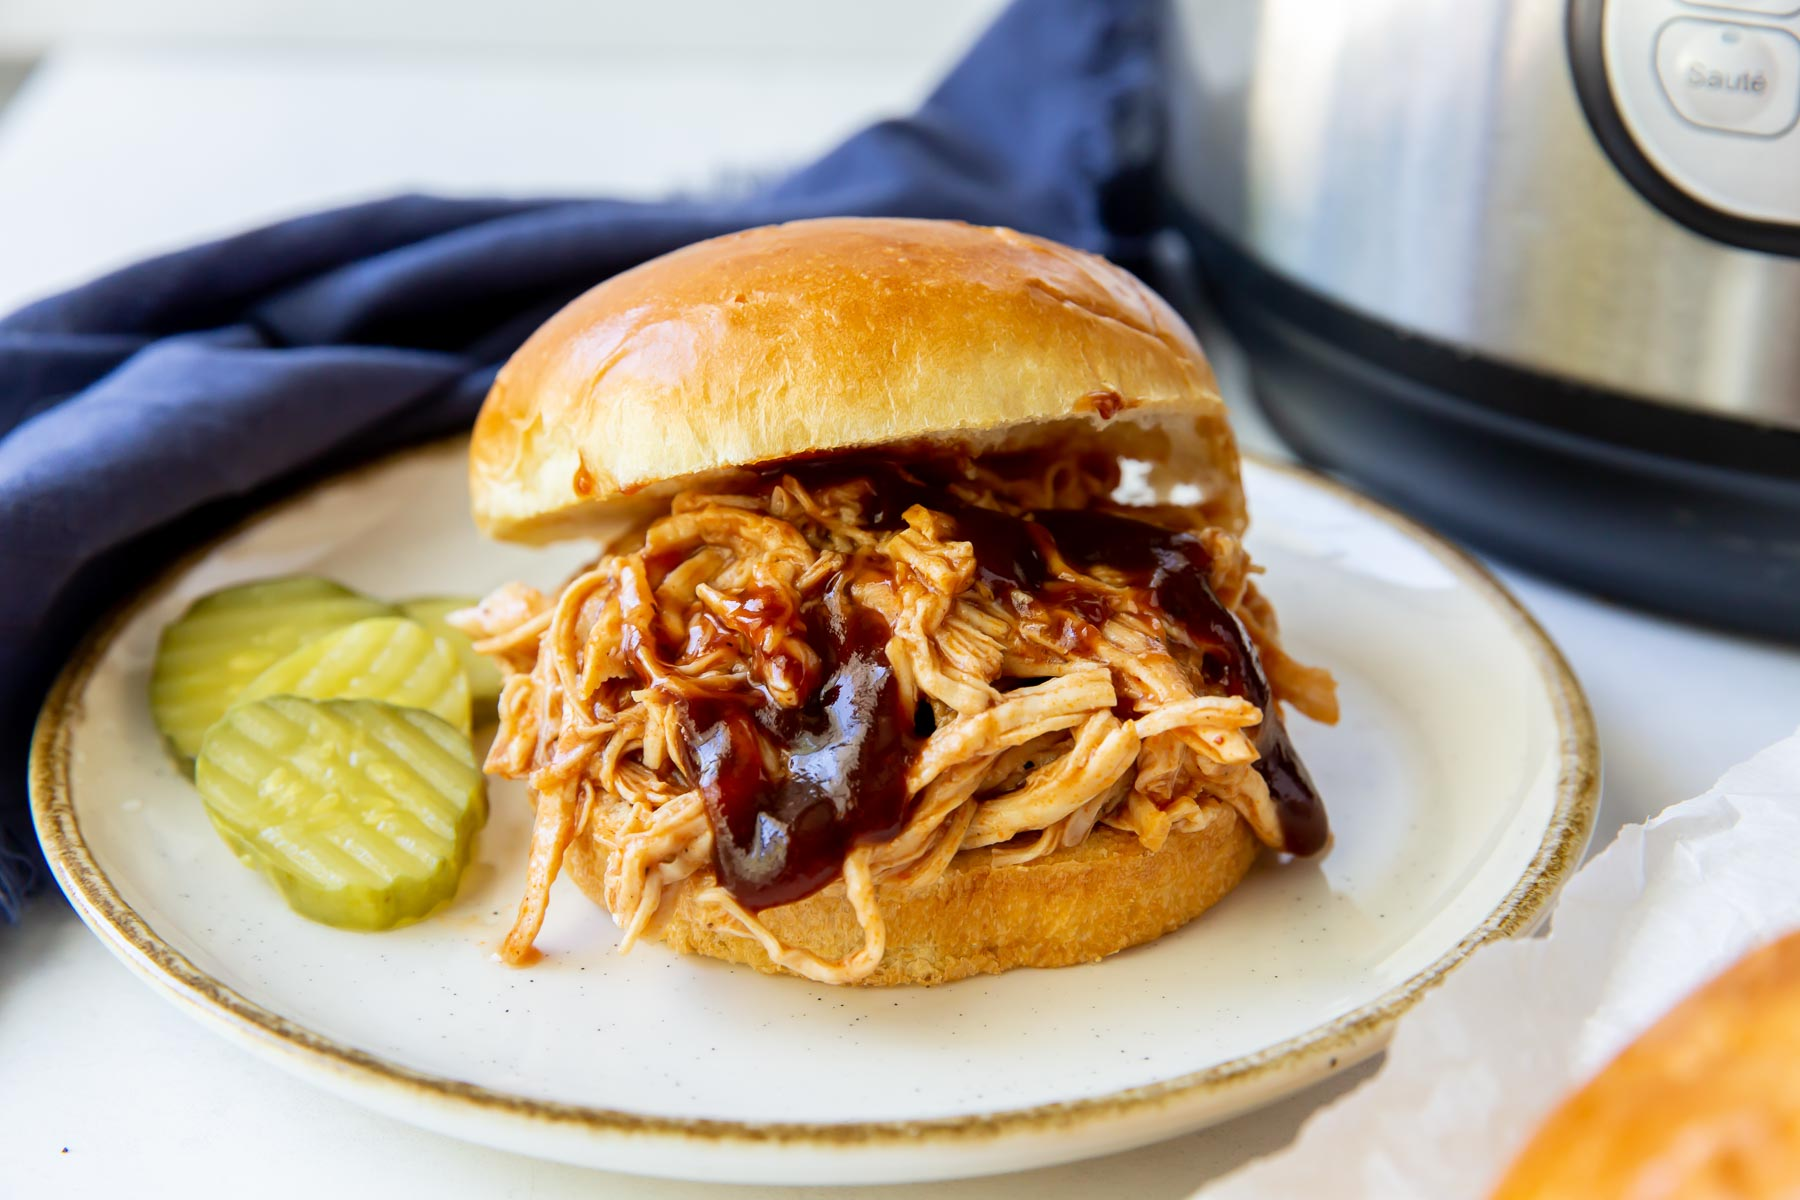 pulled chicken served on burger bun with bbq sauce and pickles on the side